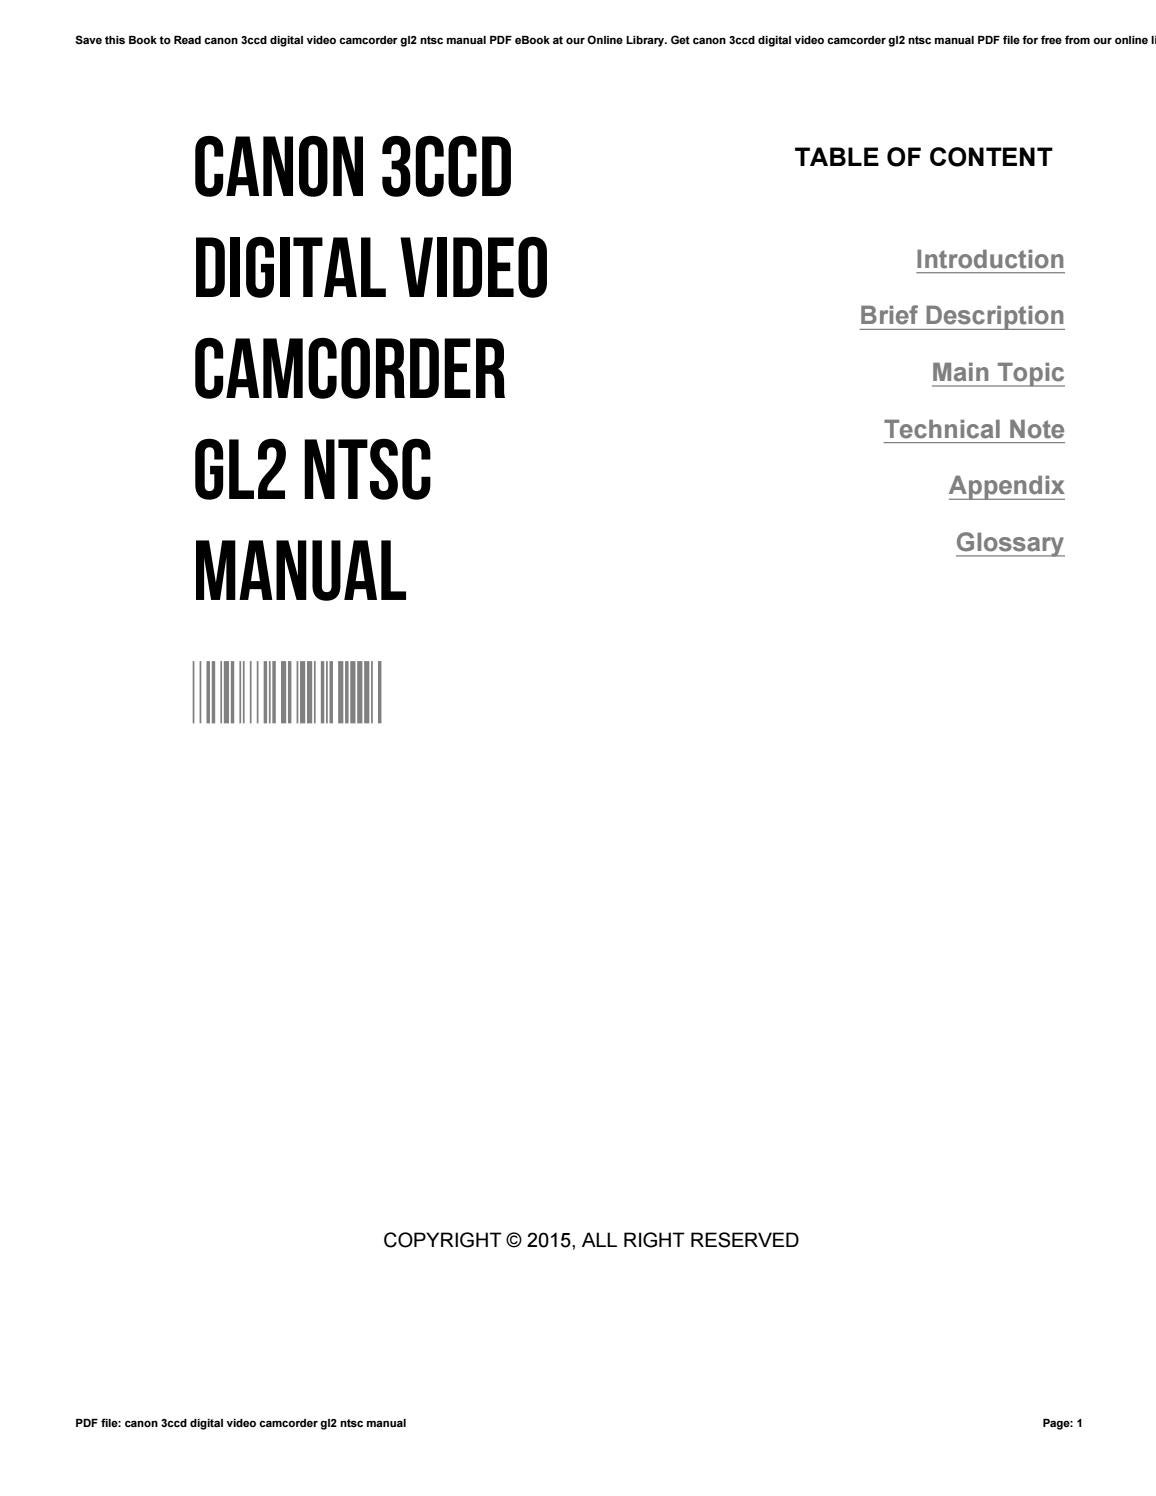 Canon 3ccd Digital Video Camcorder Gl1 Ntsc Manual